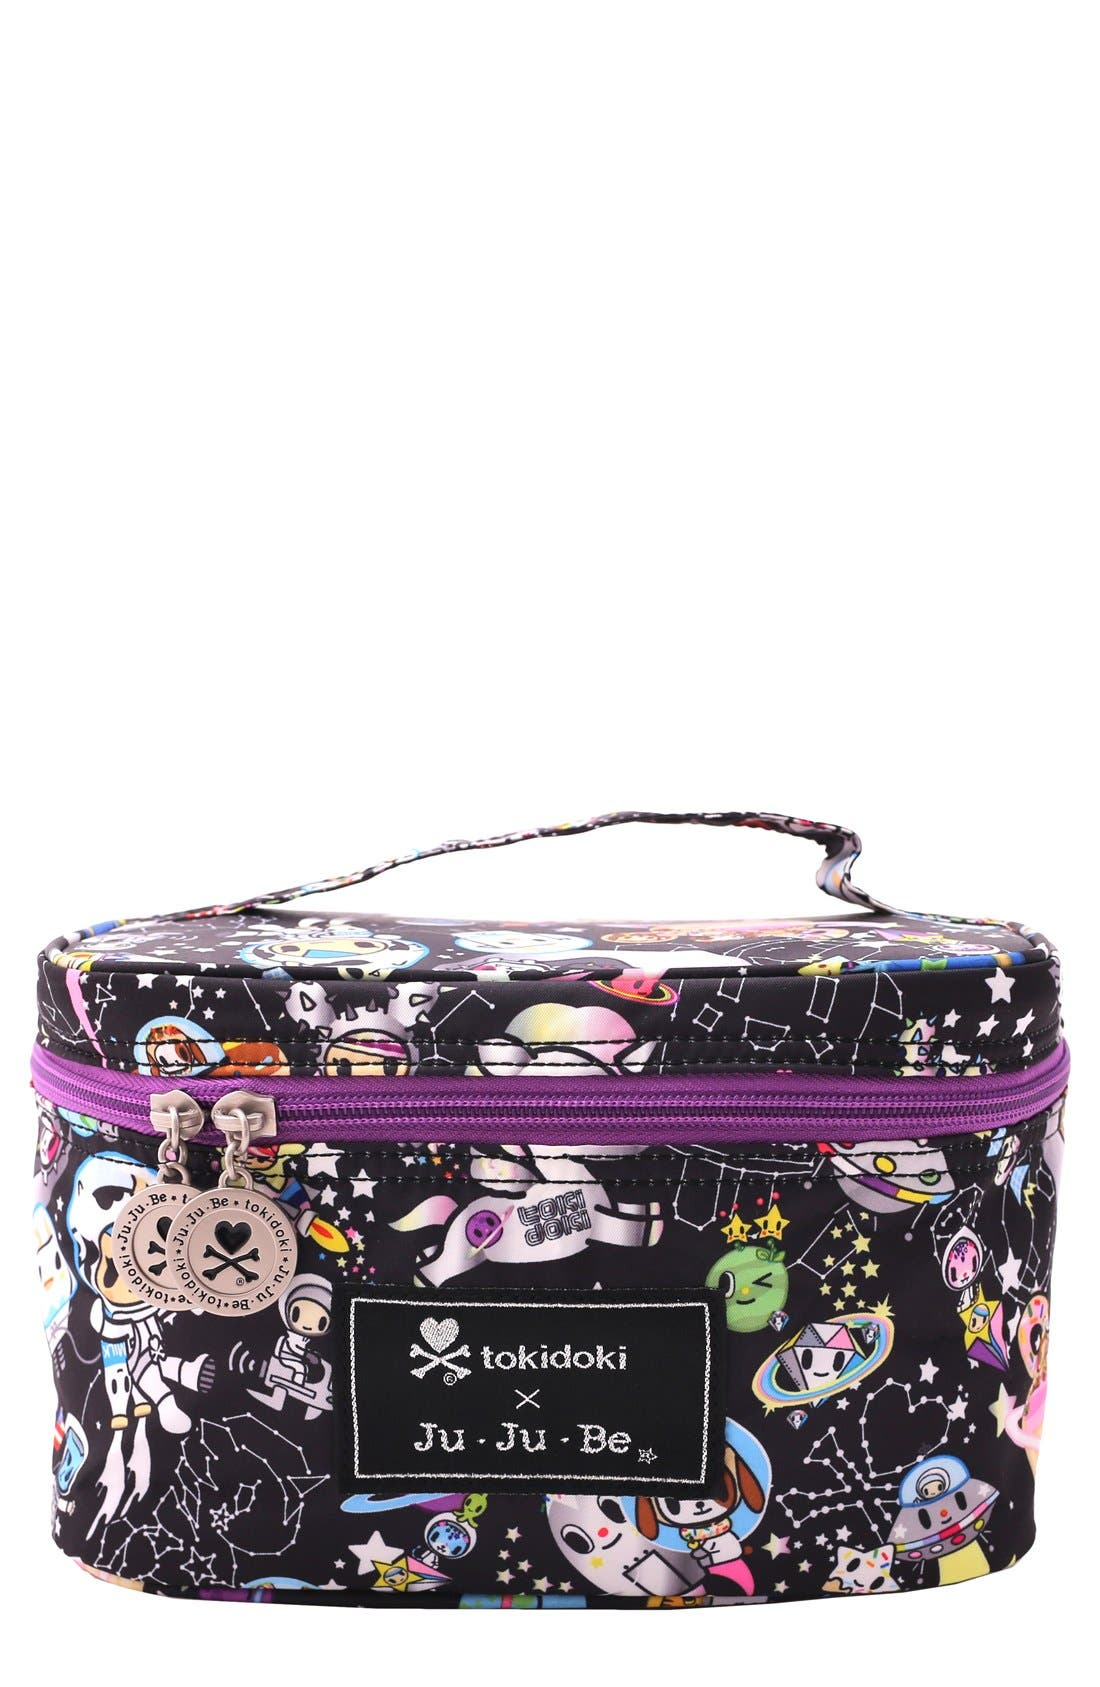 Alternate Image 1 Selected - Ju-Ju-Be x tokidoki Be Ready Cosmetics Travel Case